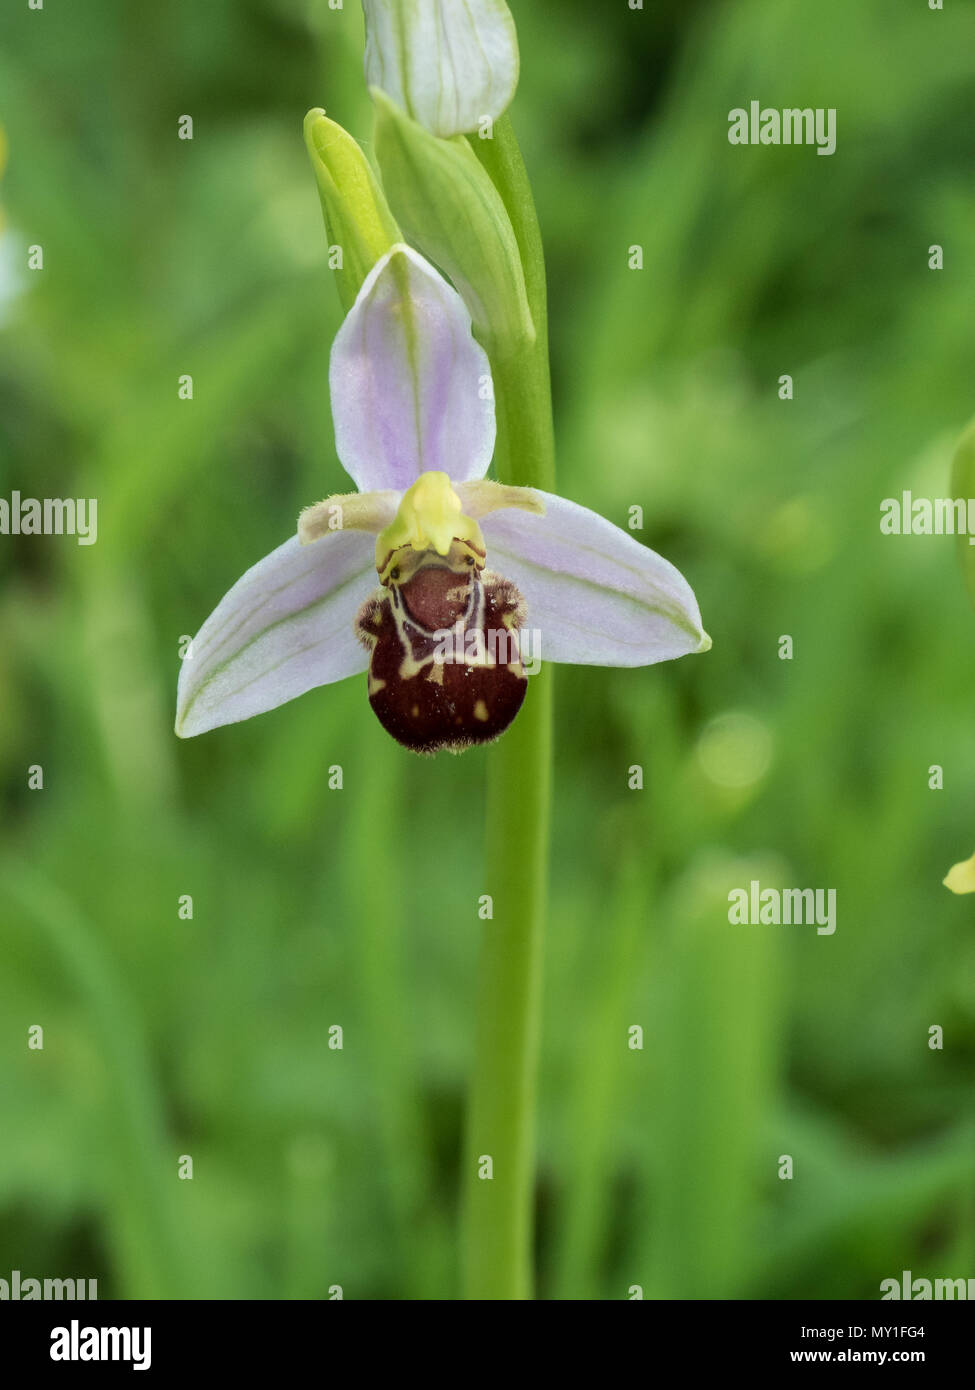 A close up of a single flower of a bee orchid Ophrys apifera - Stock Image